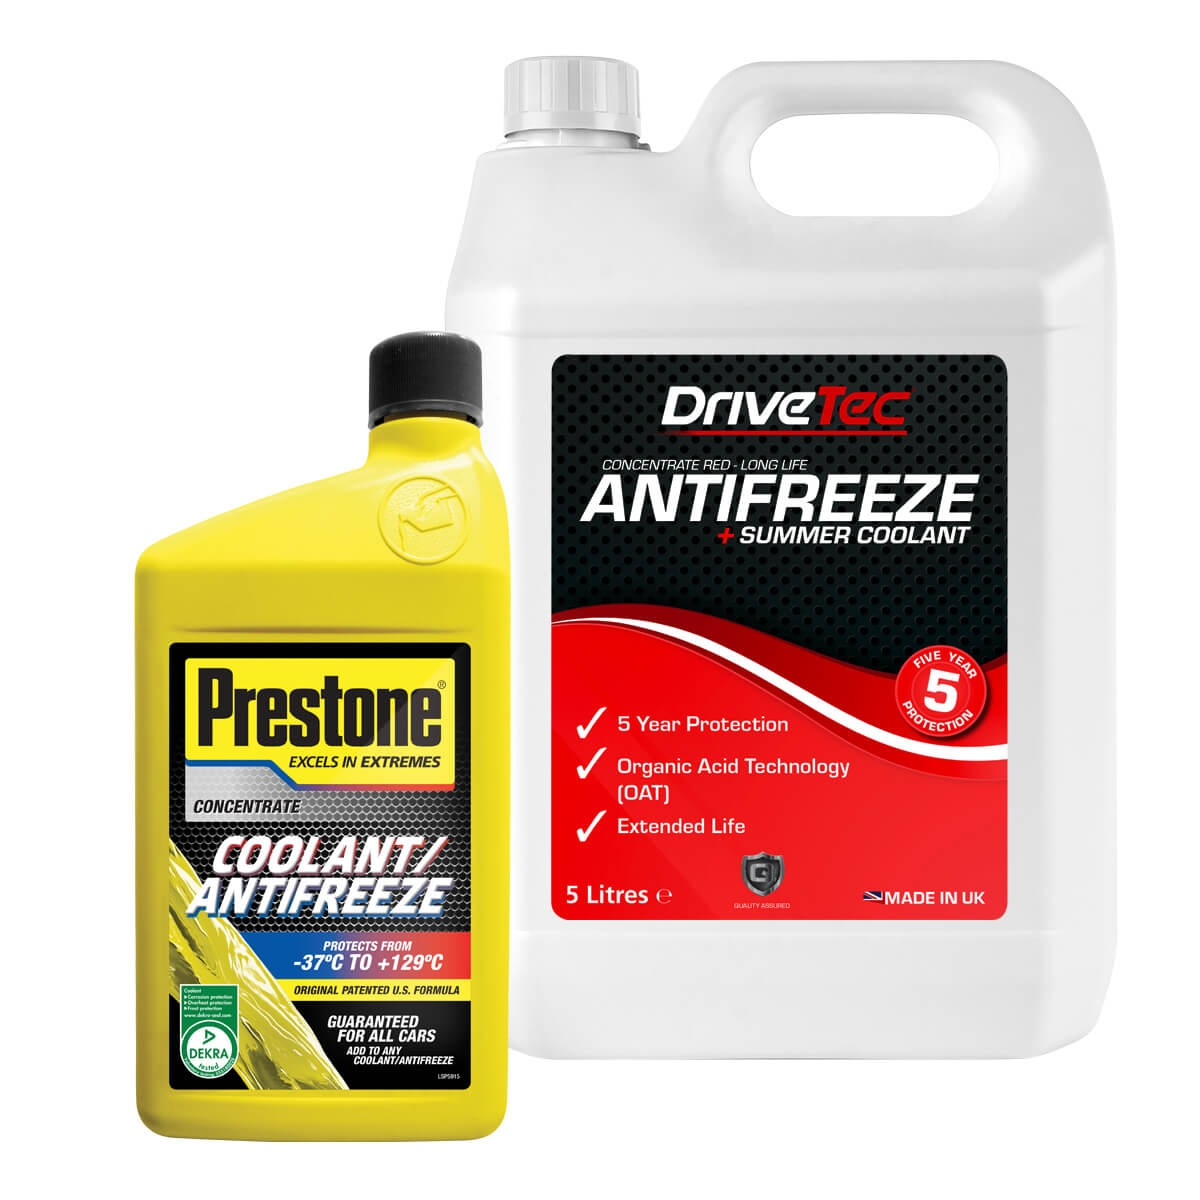 BEDFORD CHEVANNE Antifreeze & Coolant